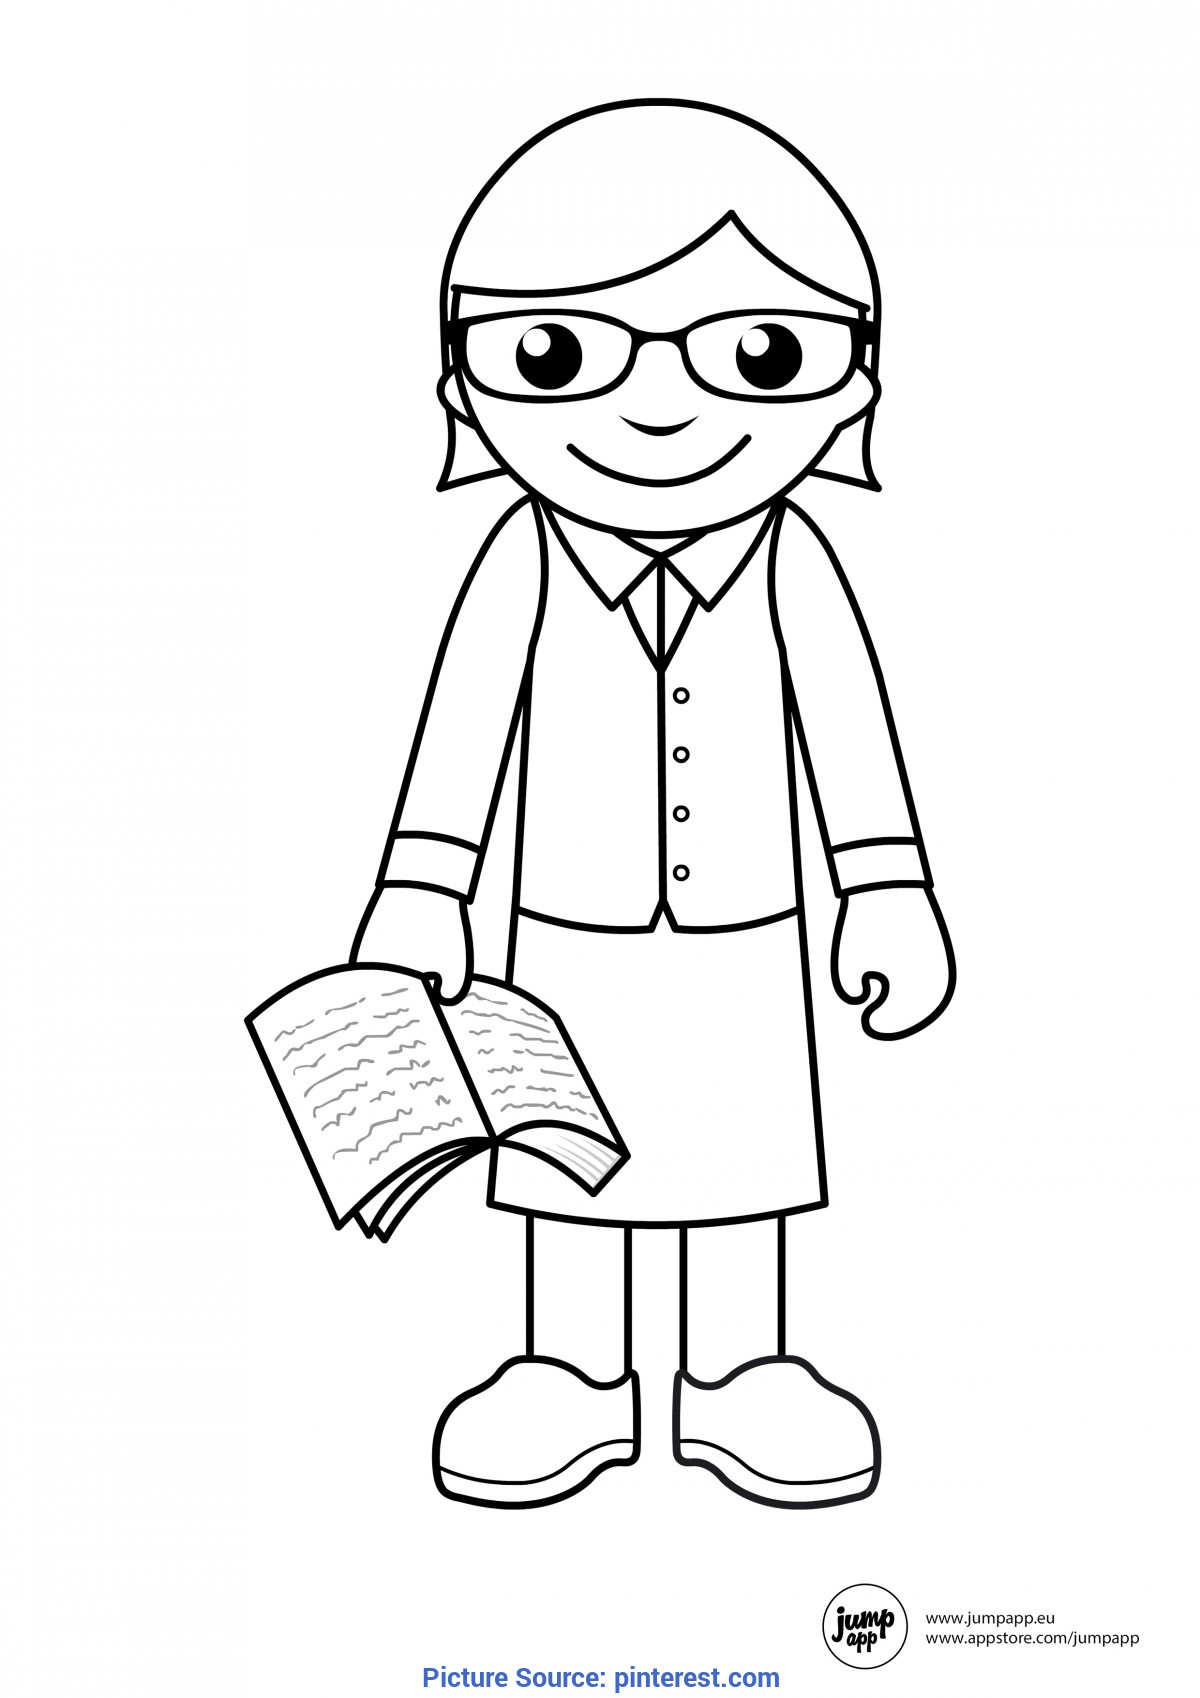 Printable Community Helper Coloring Pages For Kids | Co ...